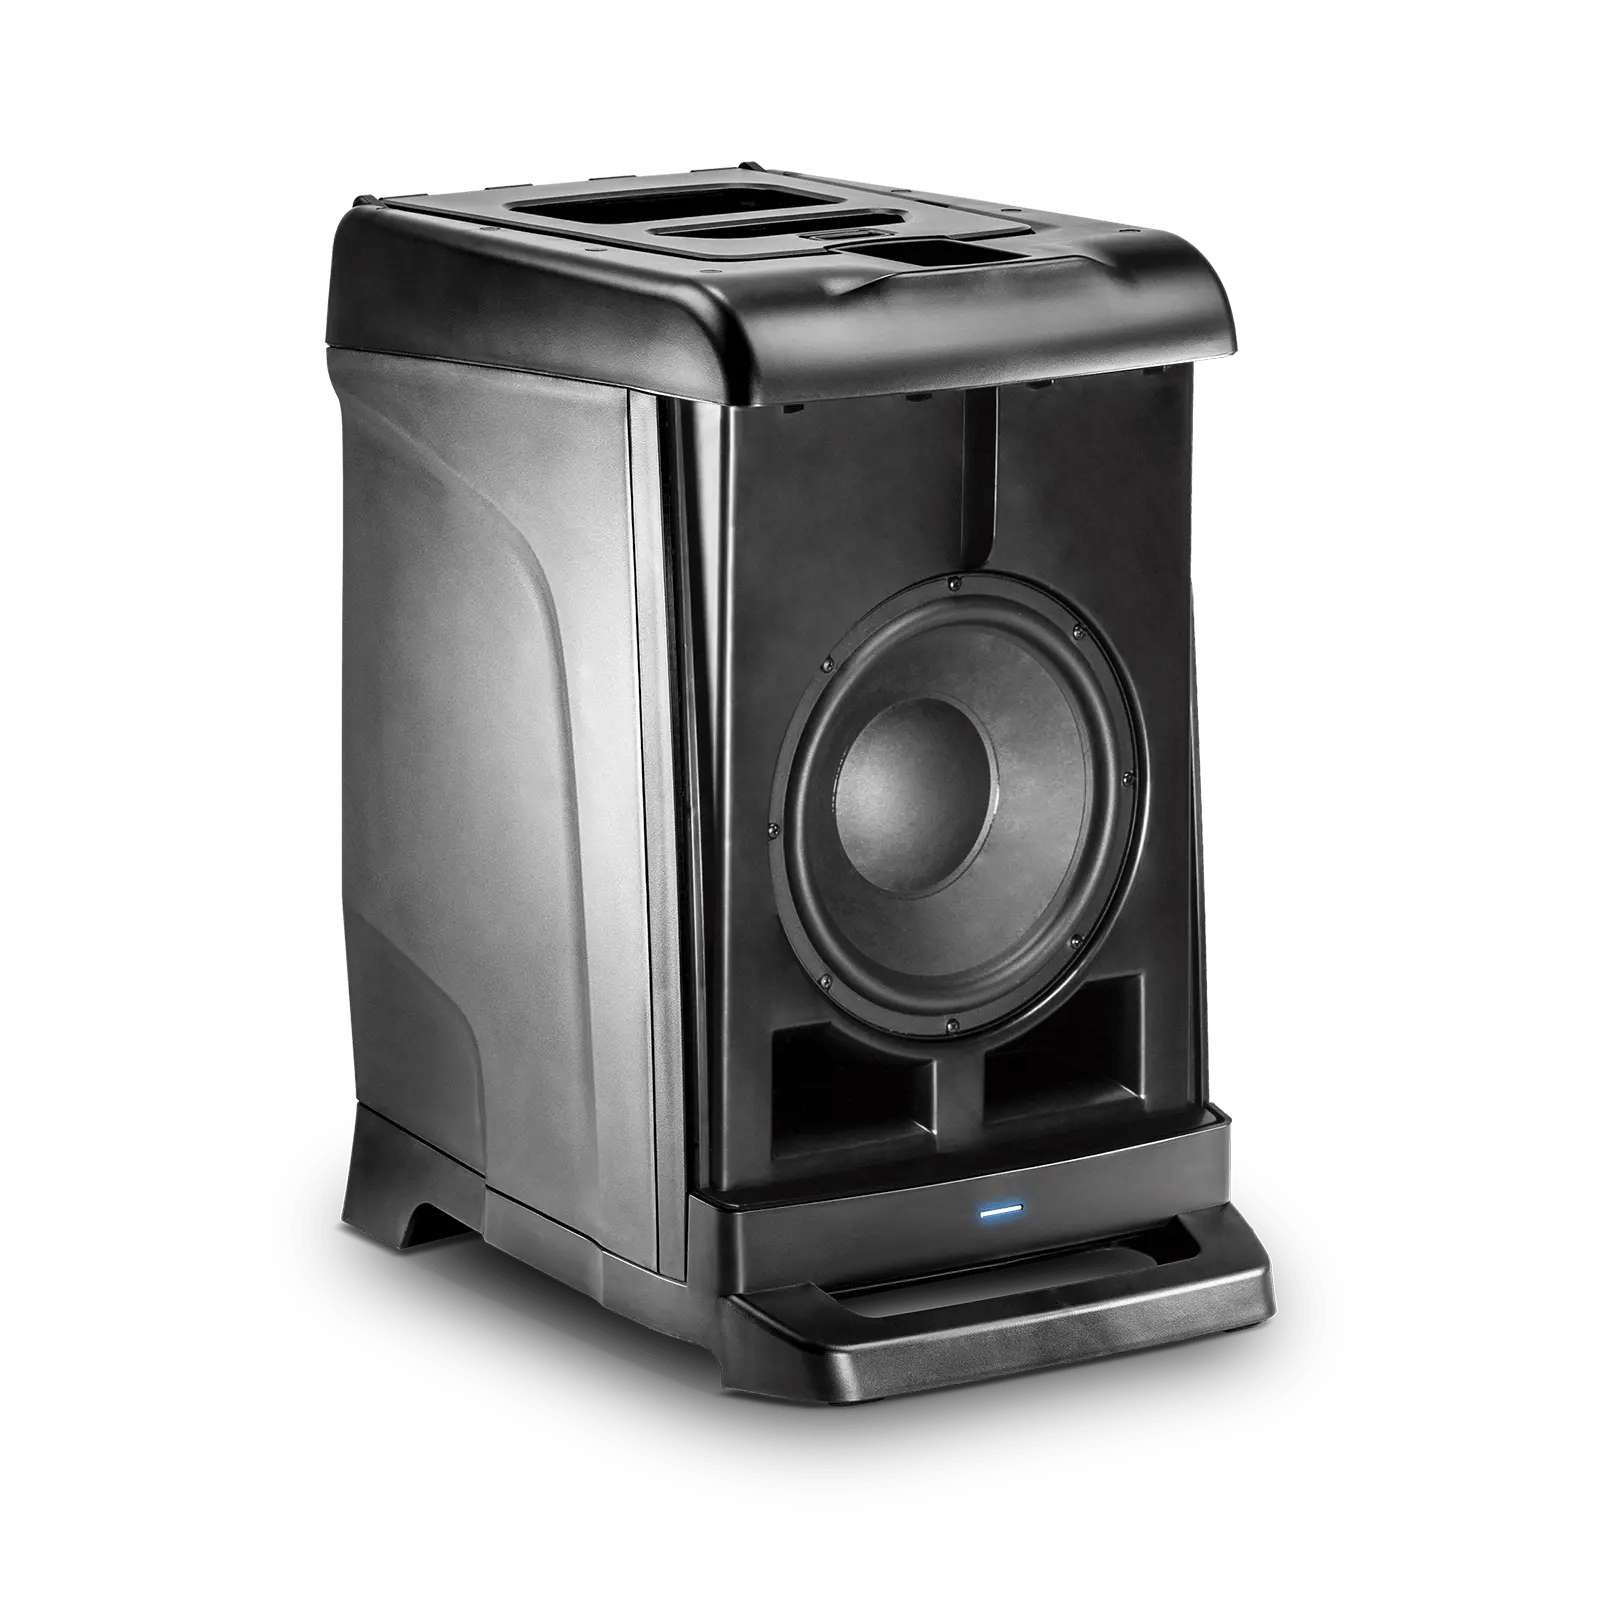 hight resolution of jbl eon one